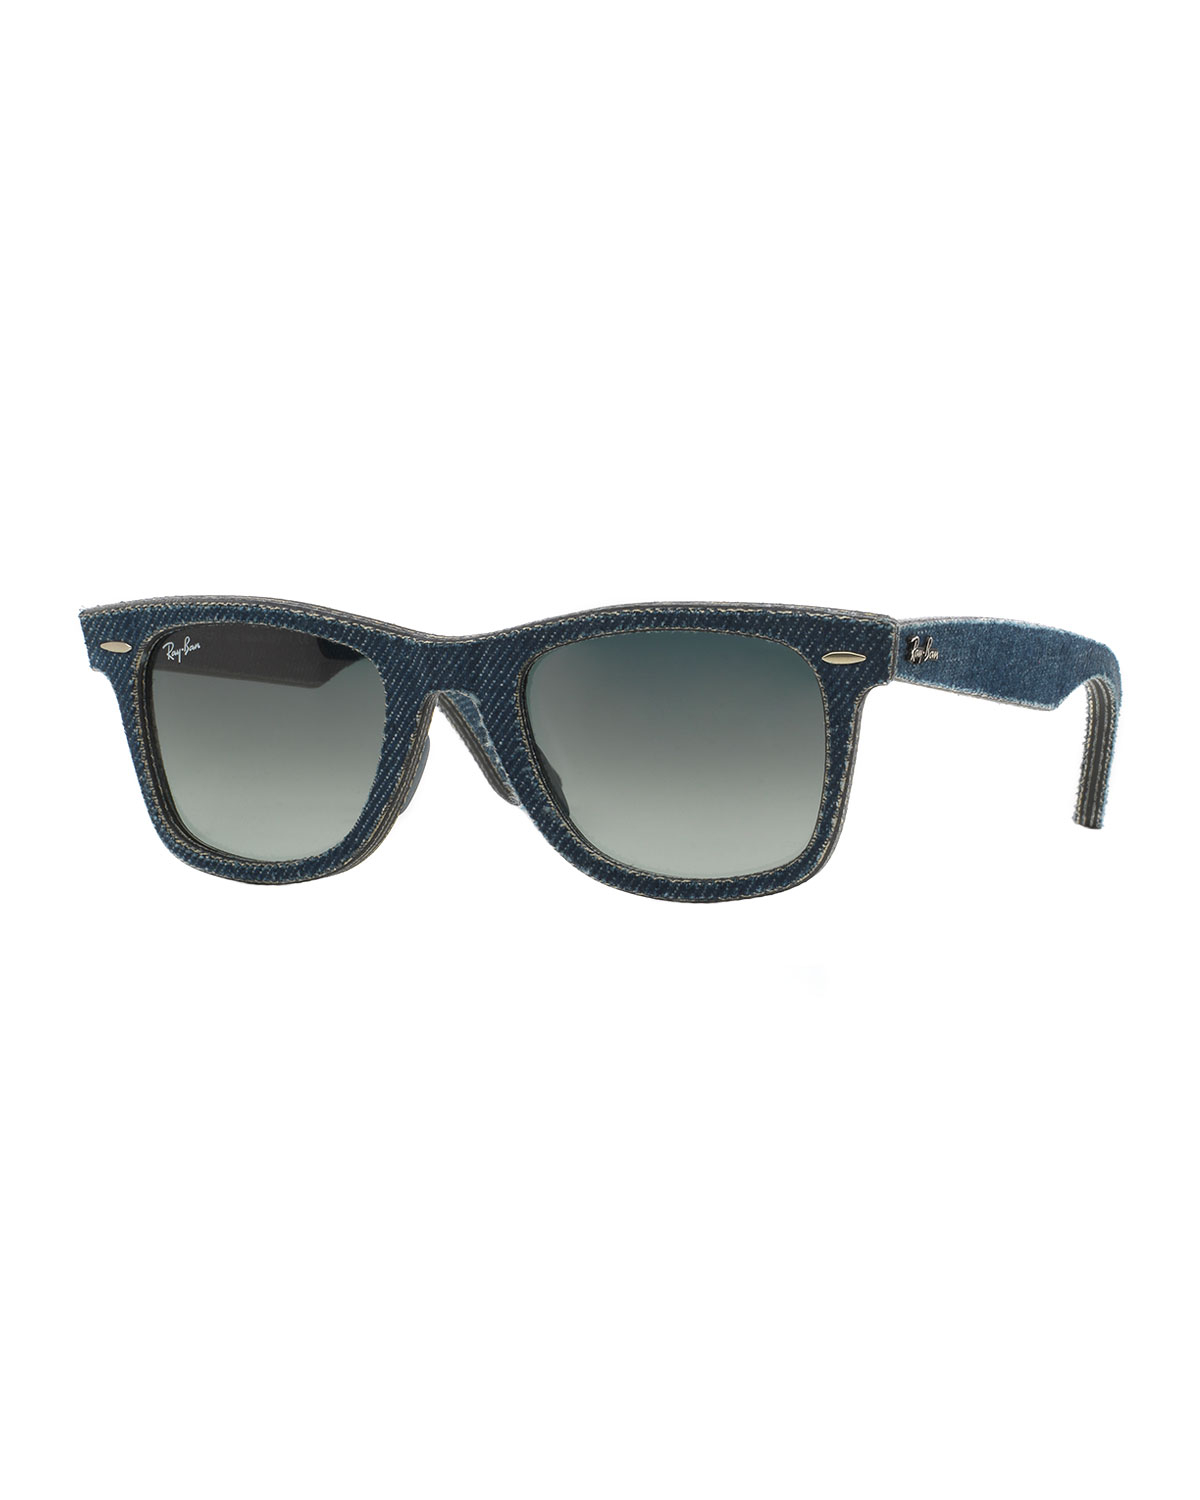 0e5020f38f0 Ray Bans Wayfarers Sunglass Size For Wide Face « Heritage Malta